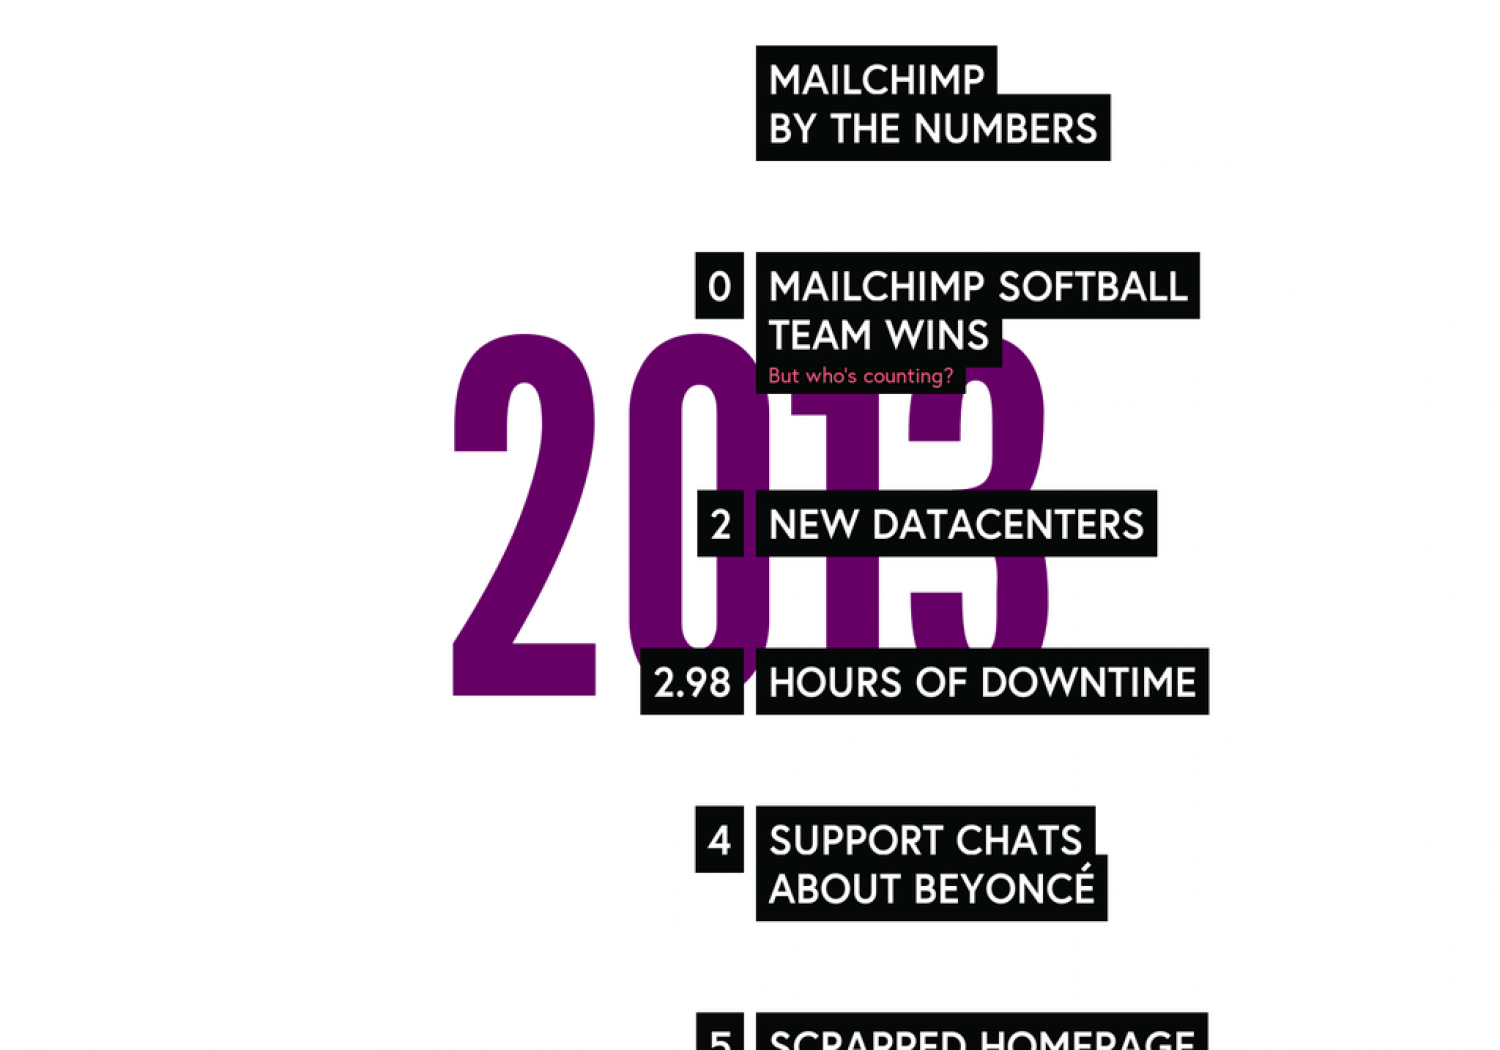 Mailchimp 2013 Annual Report Infographic